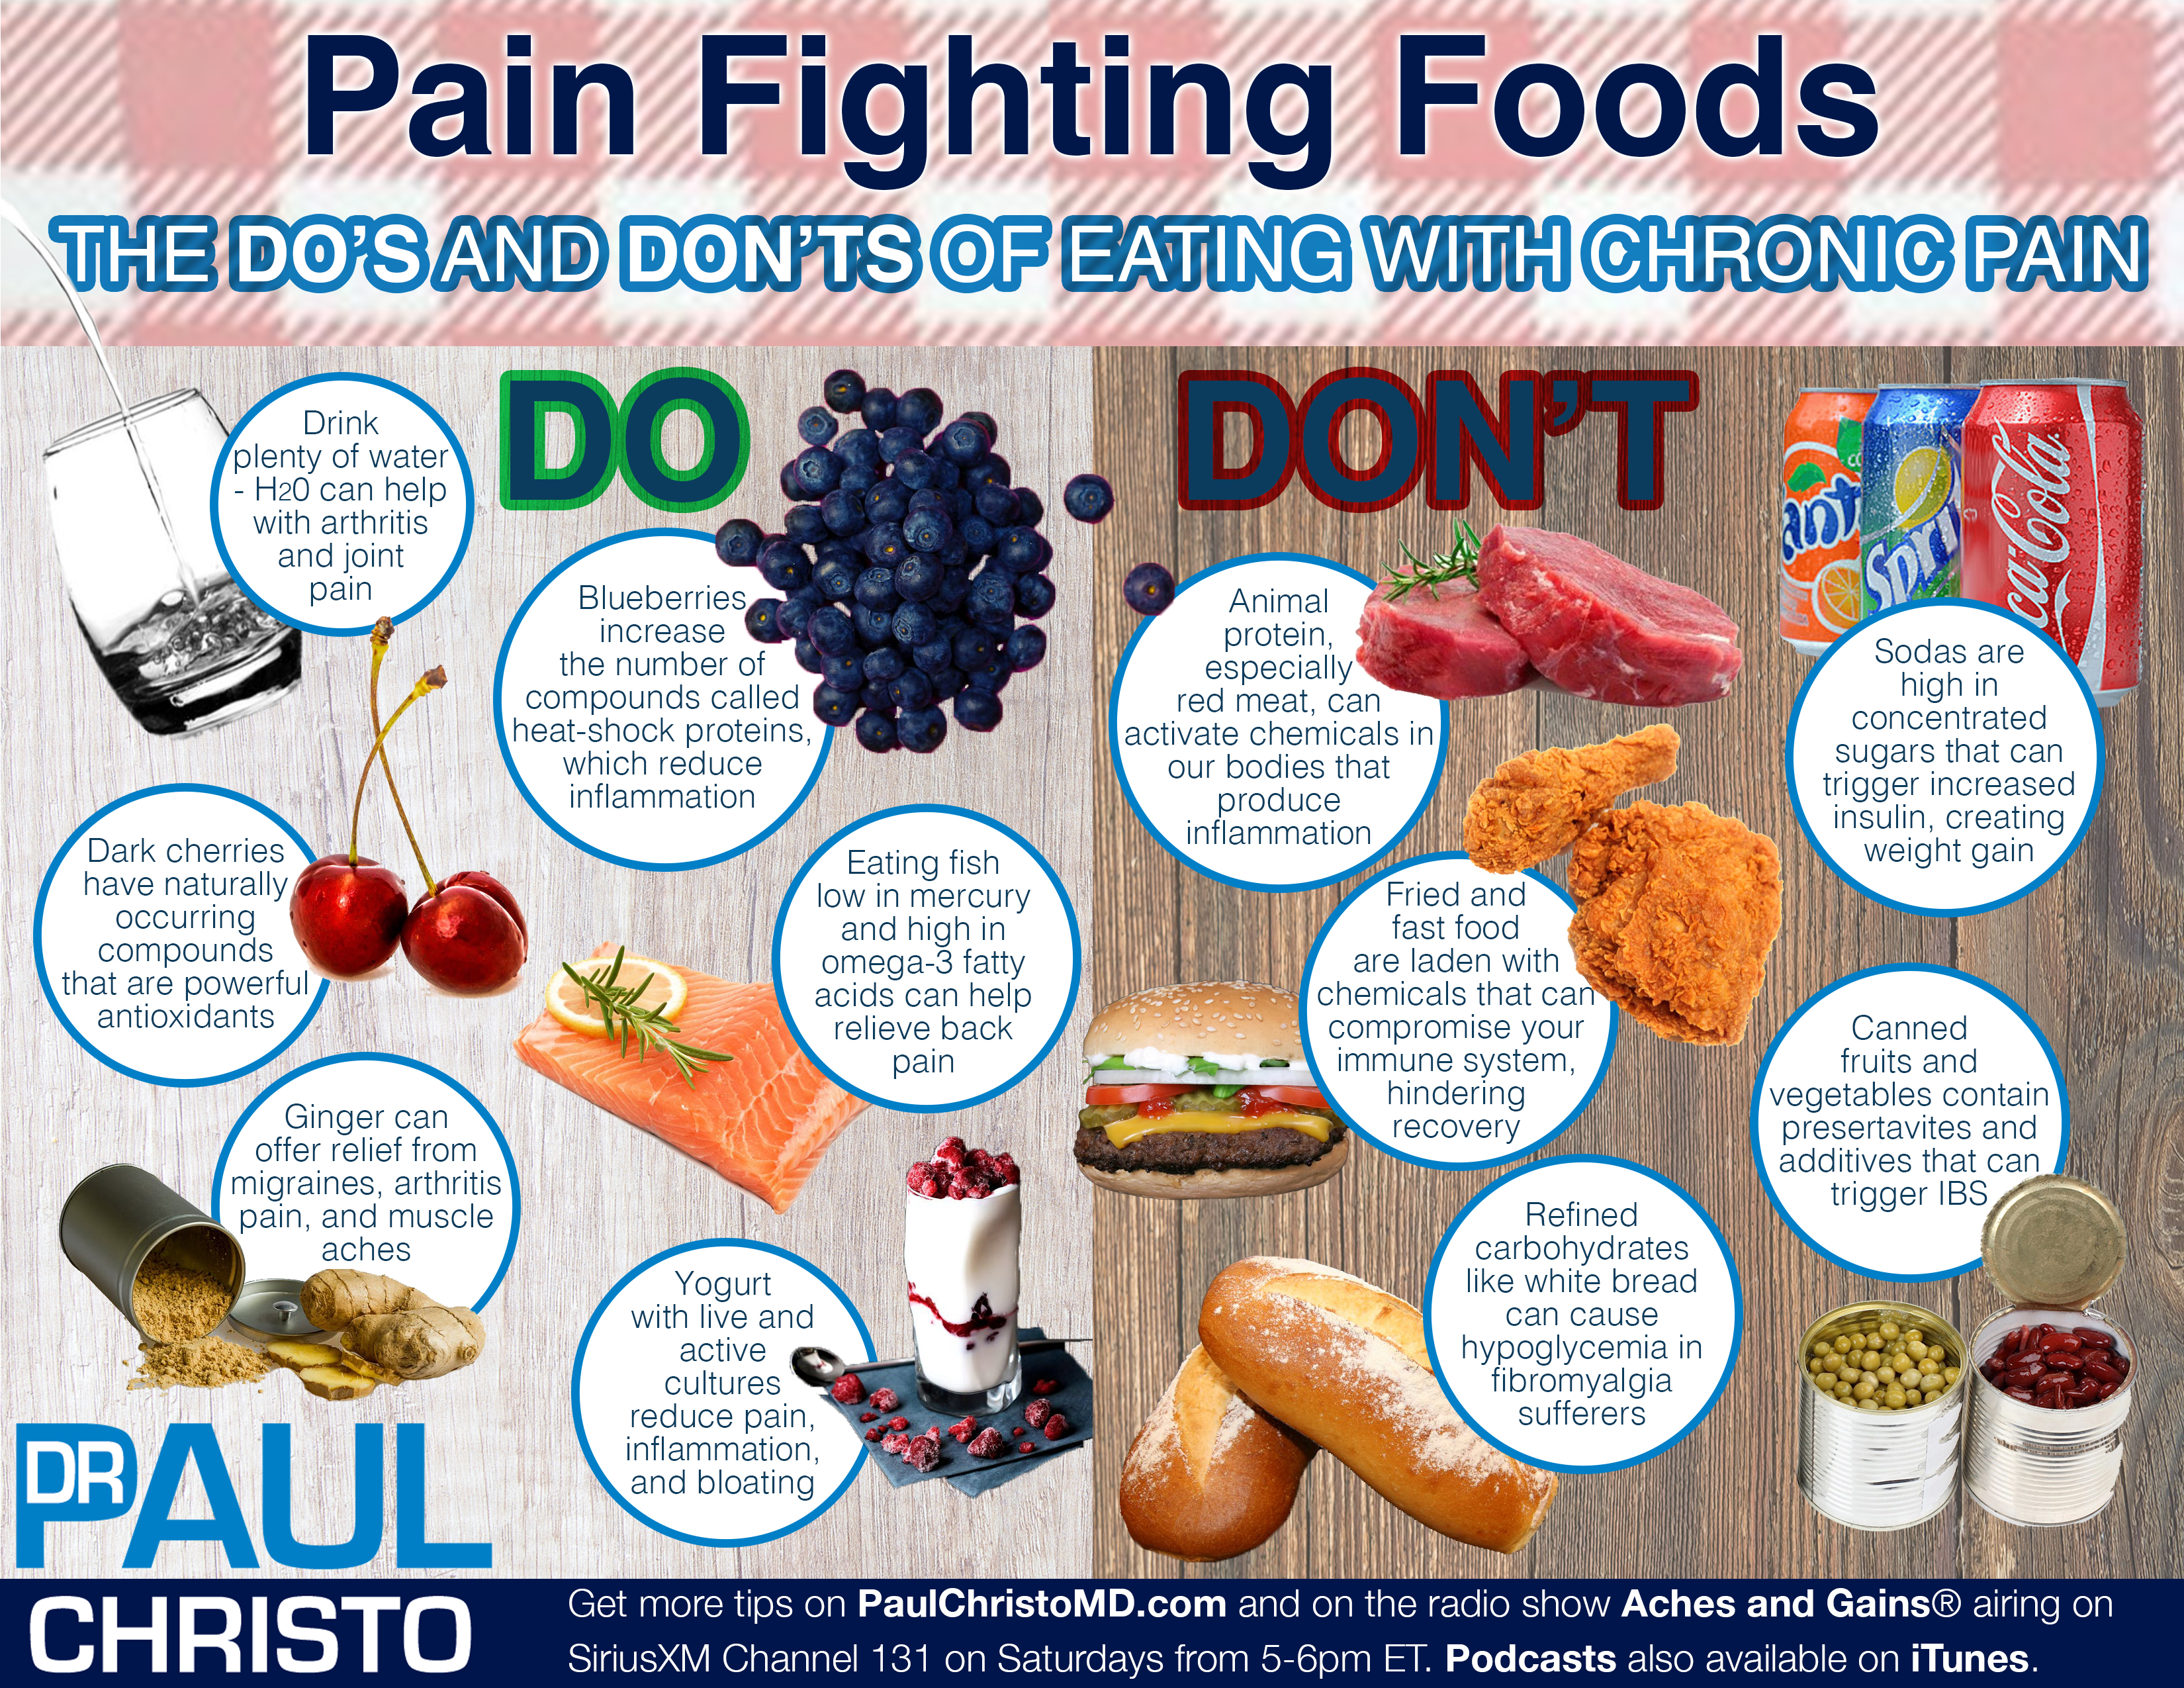 The Do's and Don'ts of Eating with Chronic Pain